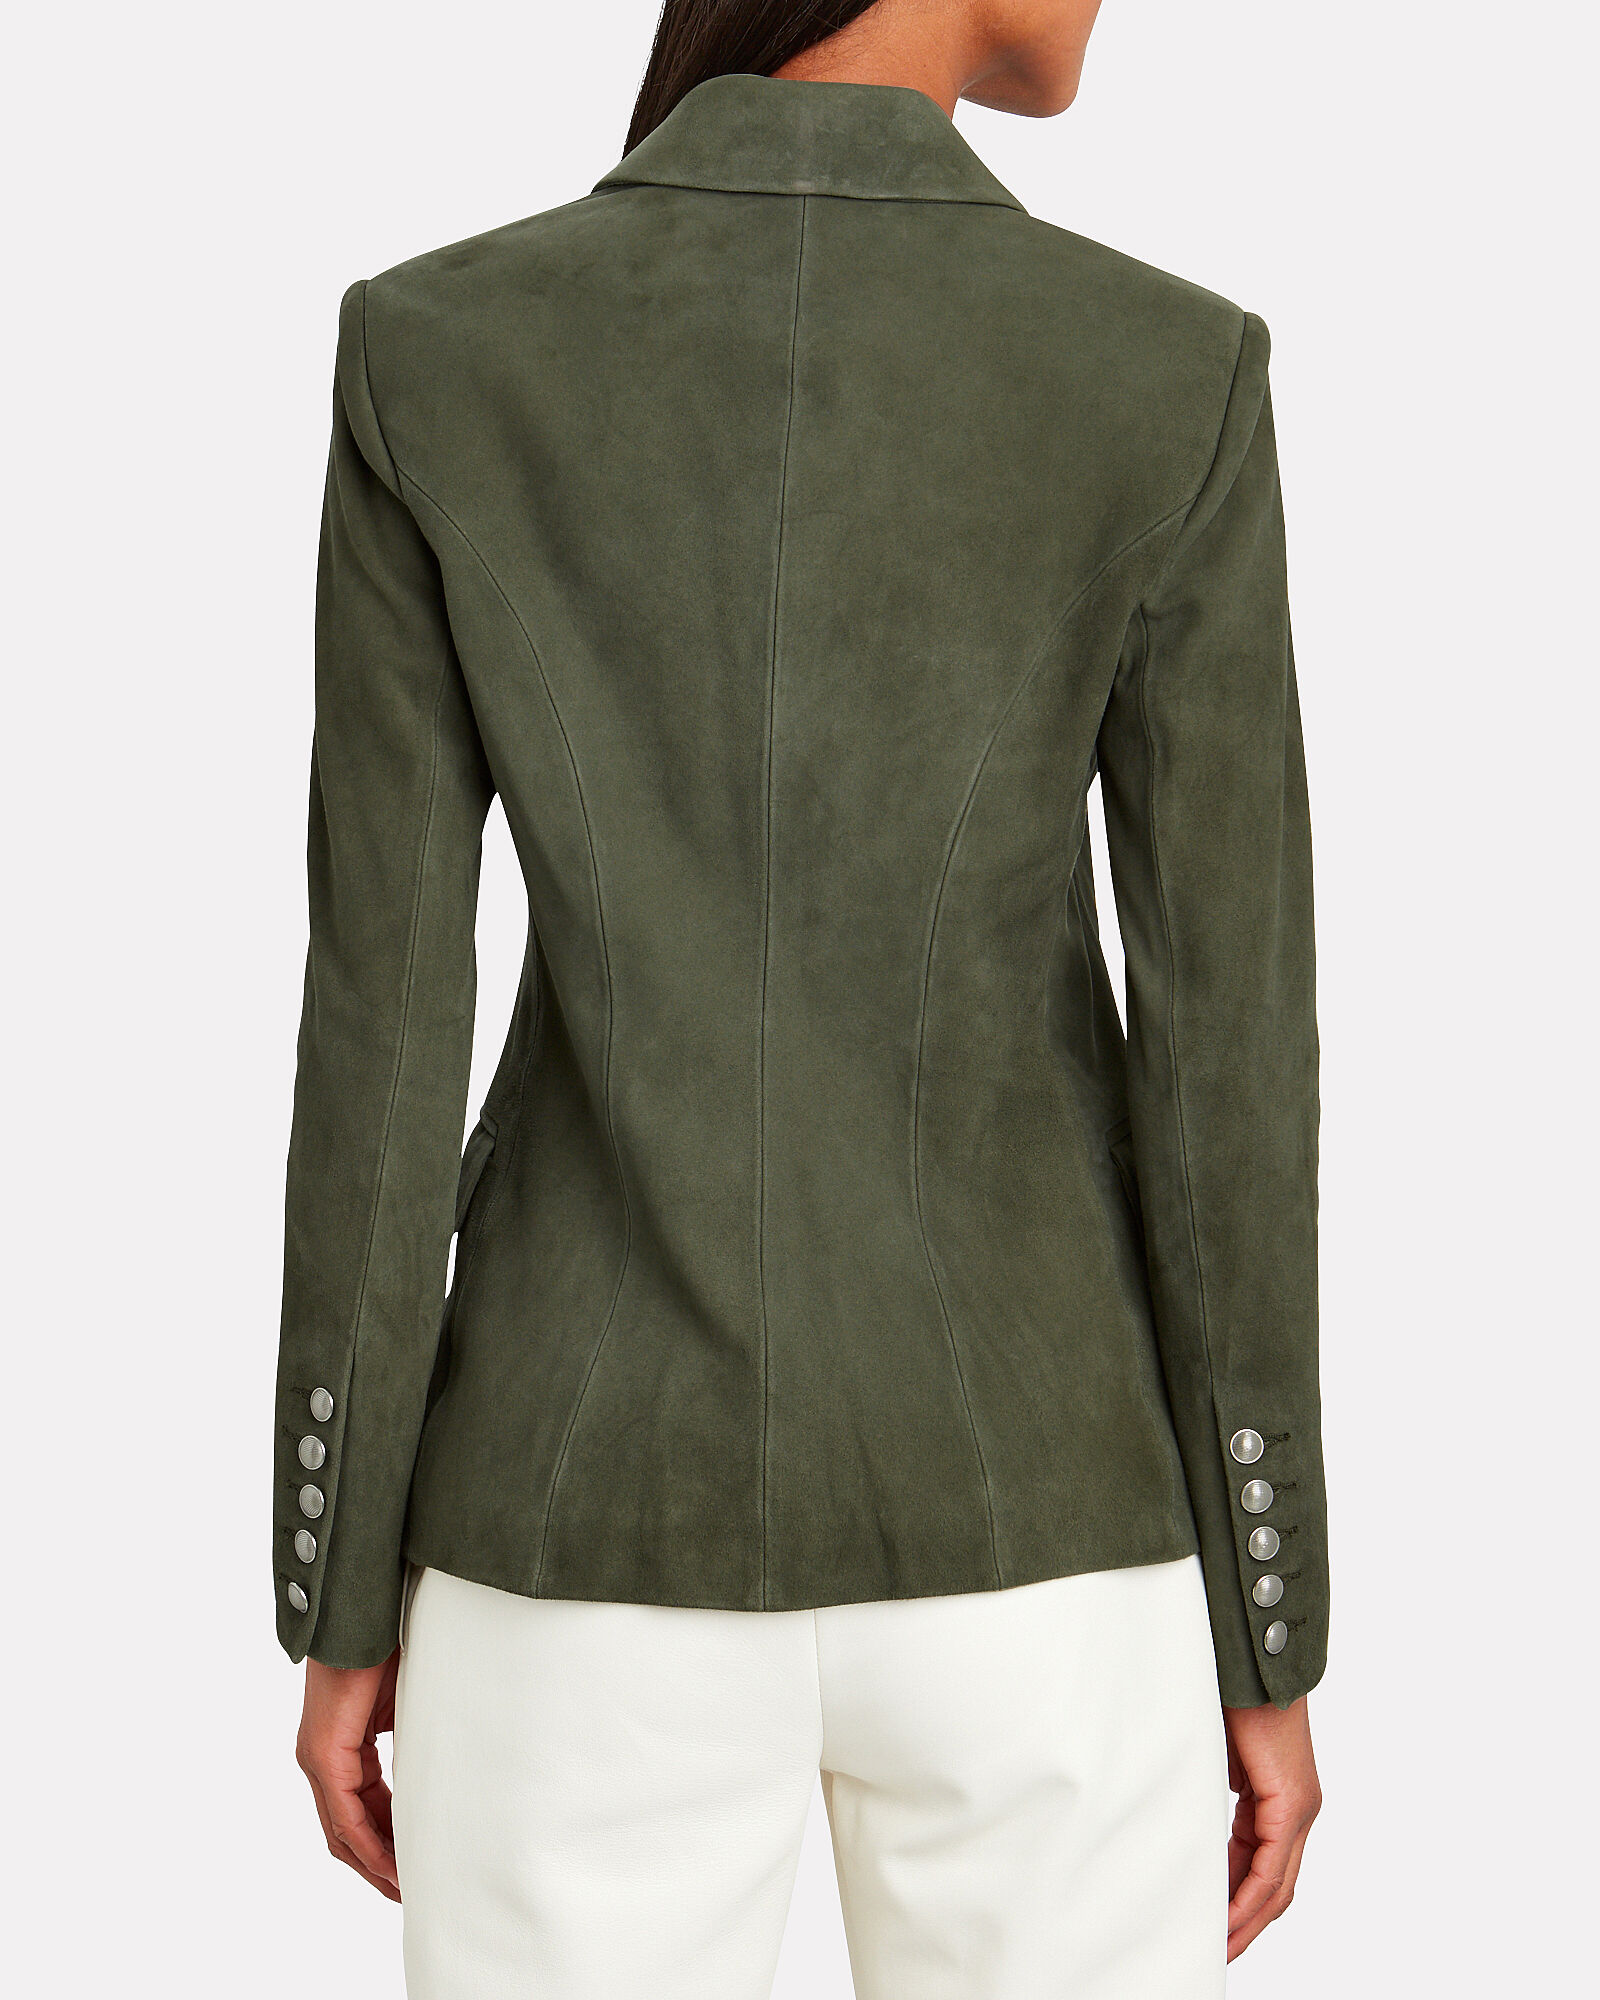 Kenzie Double-Breasted Suede Blazer, OLIVE, hi-res